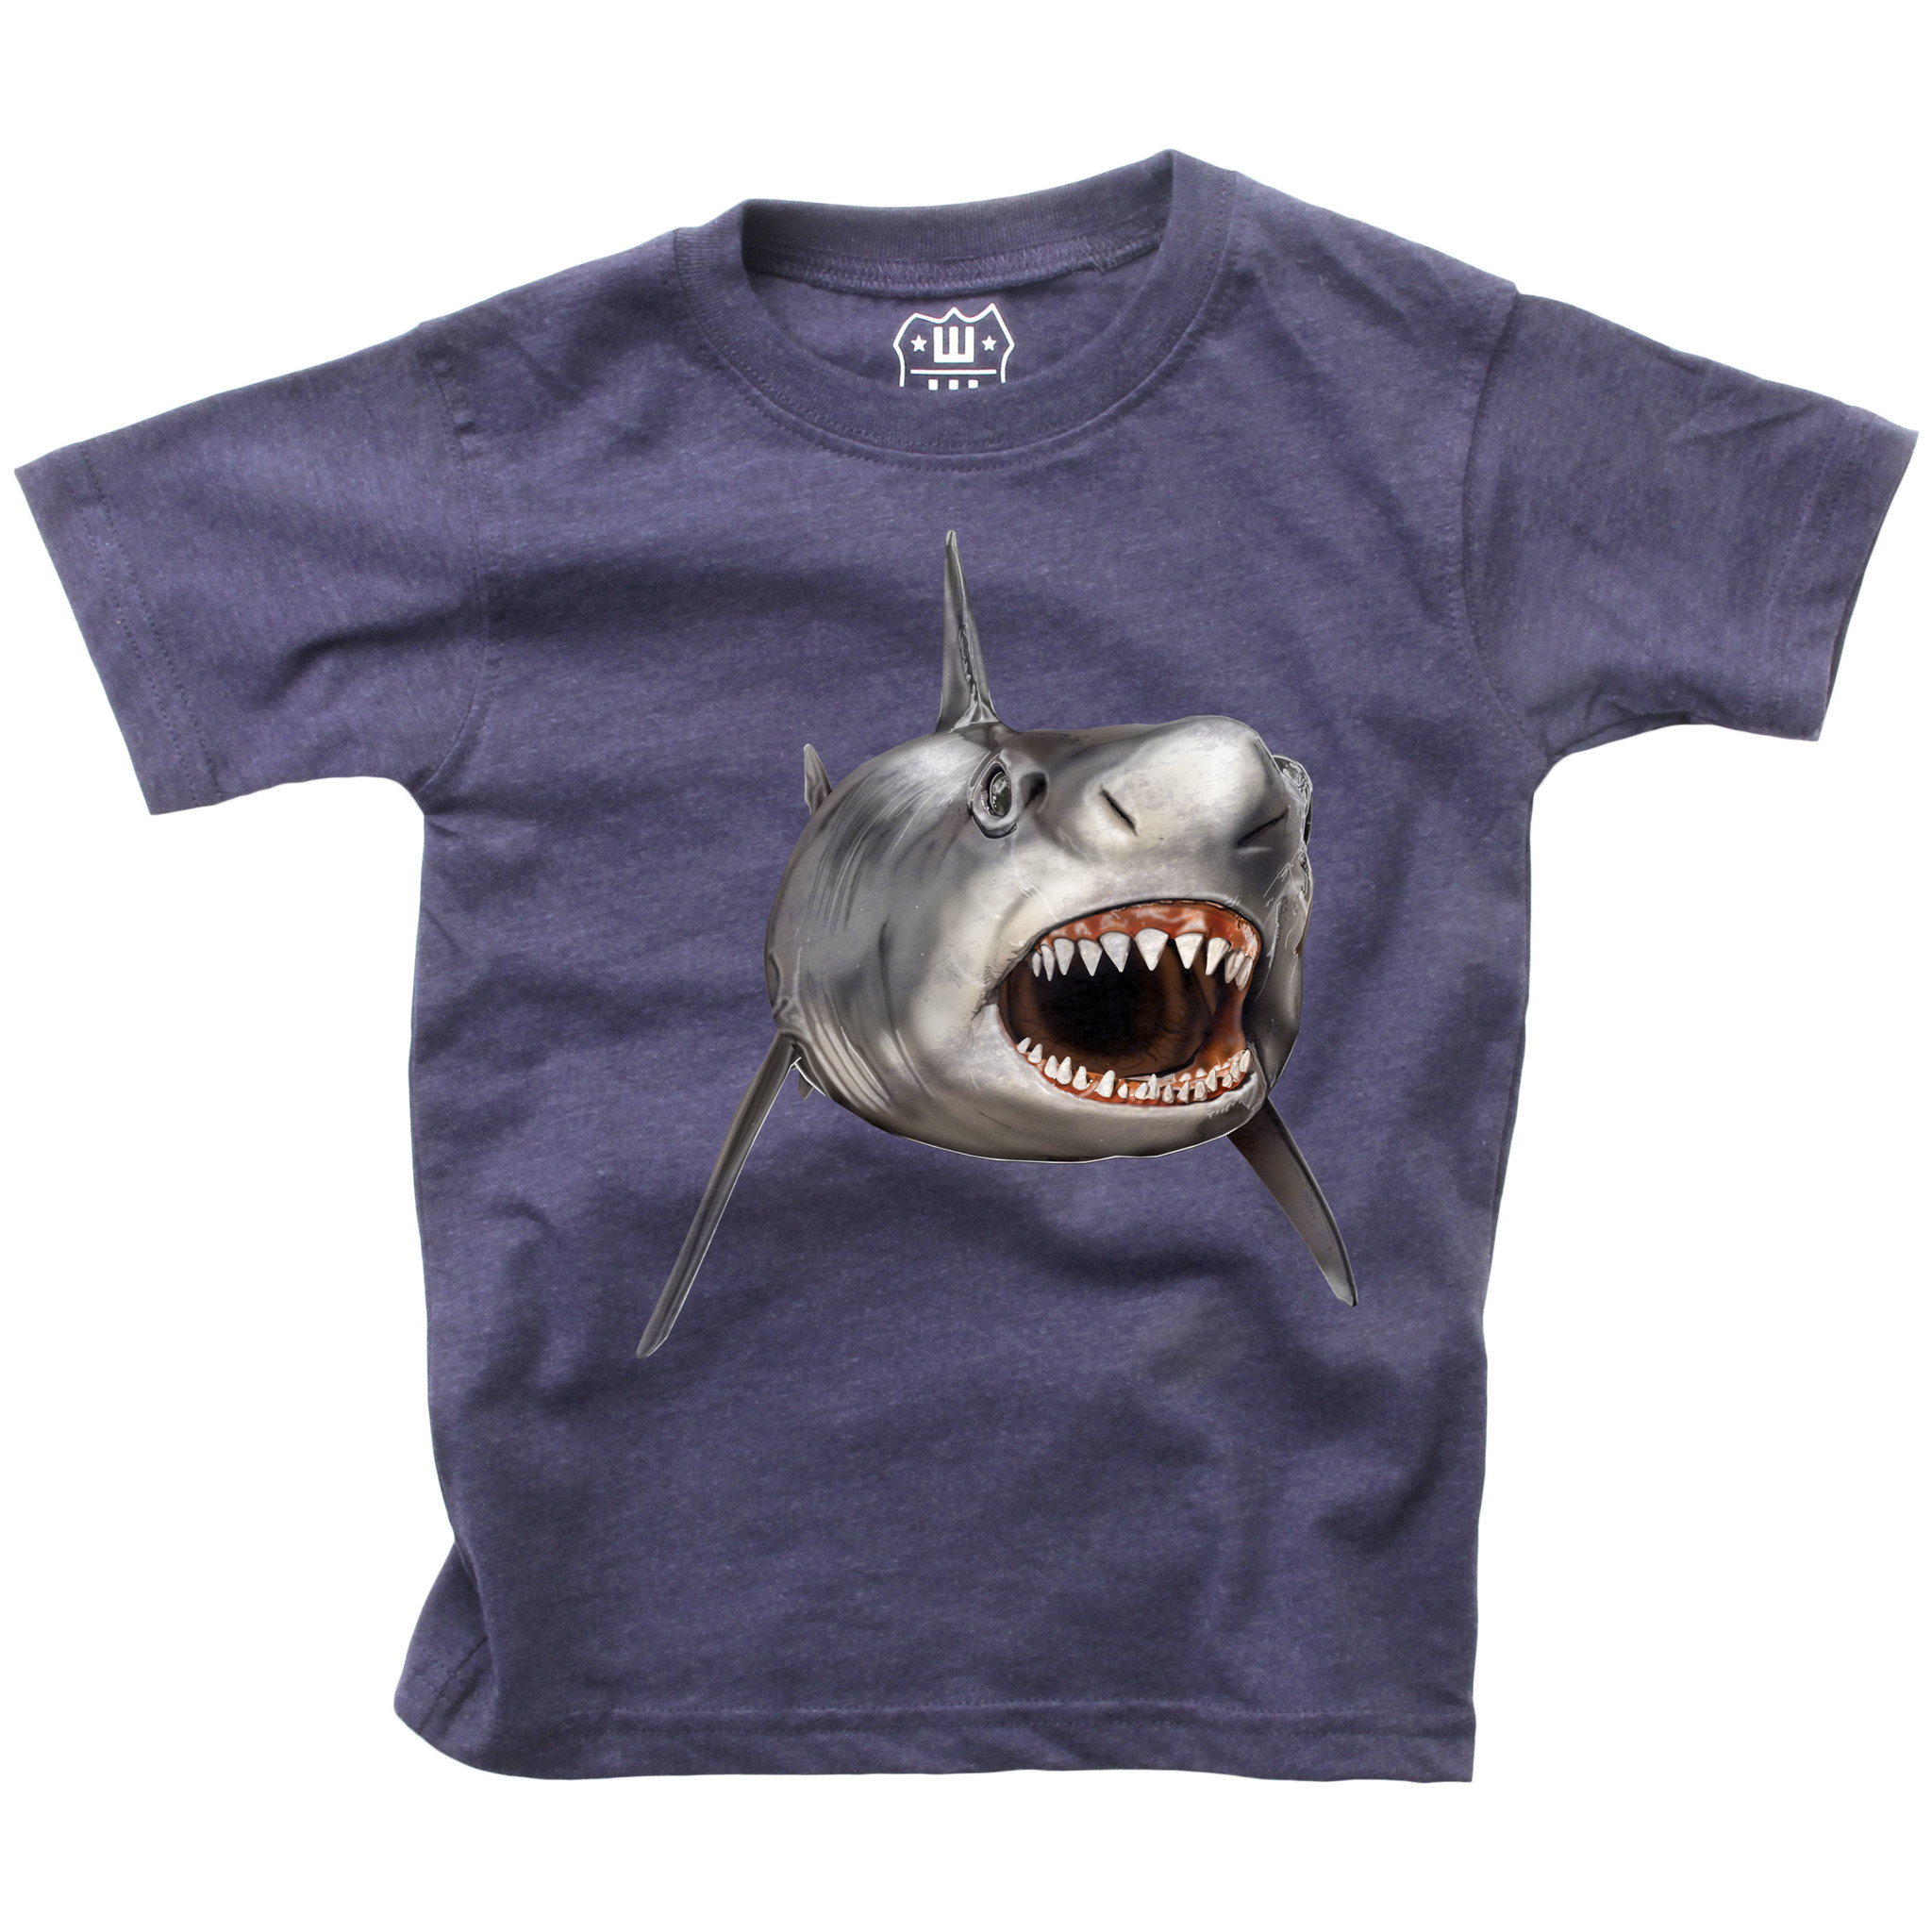 Wes & Willy Wes & Willy | Shark Smile Tee